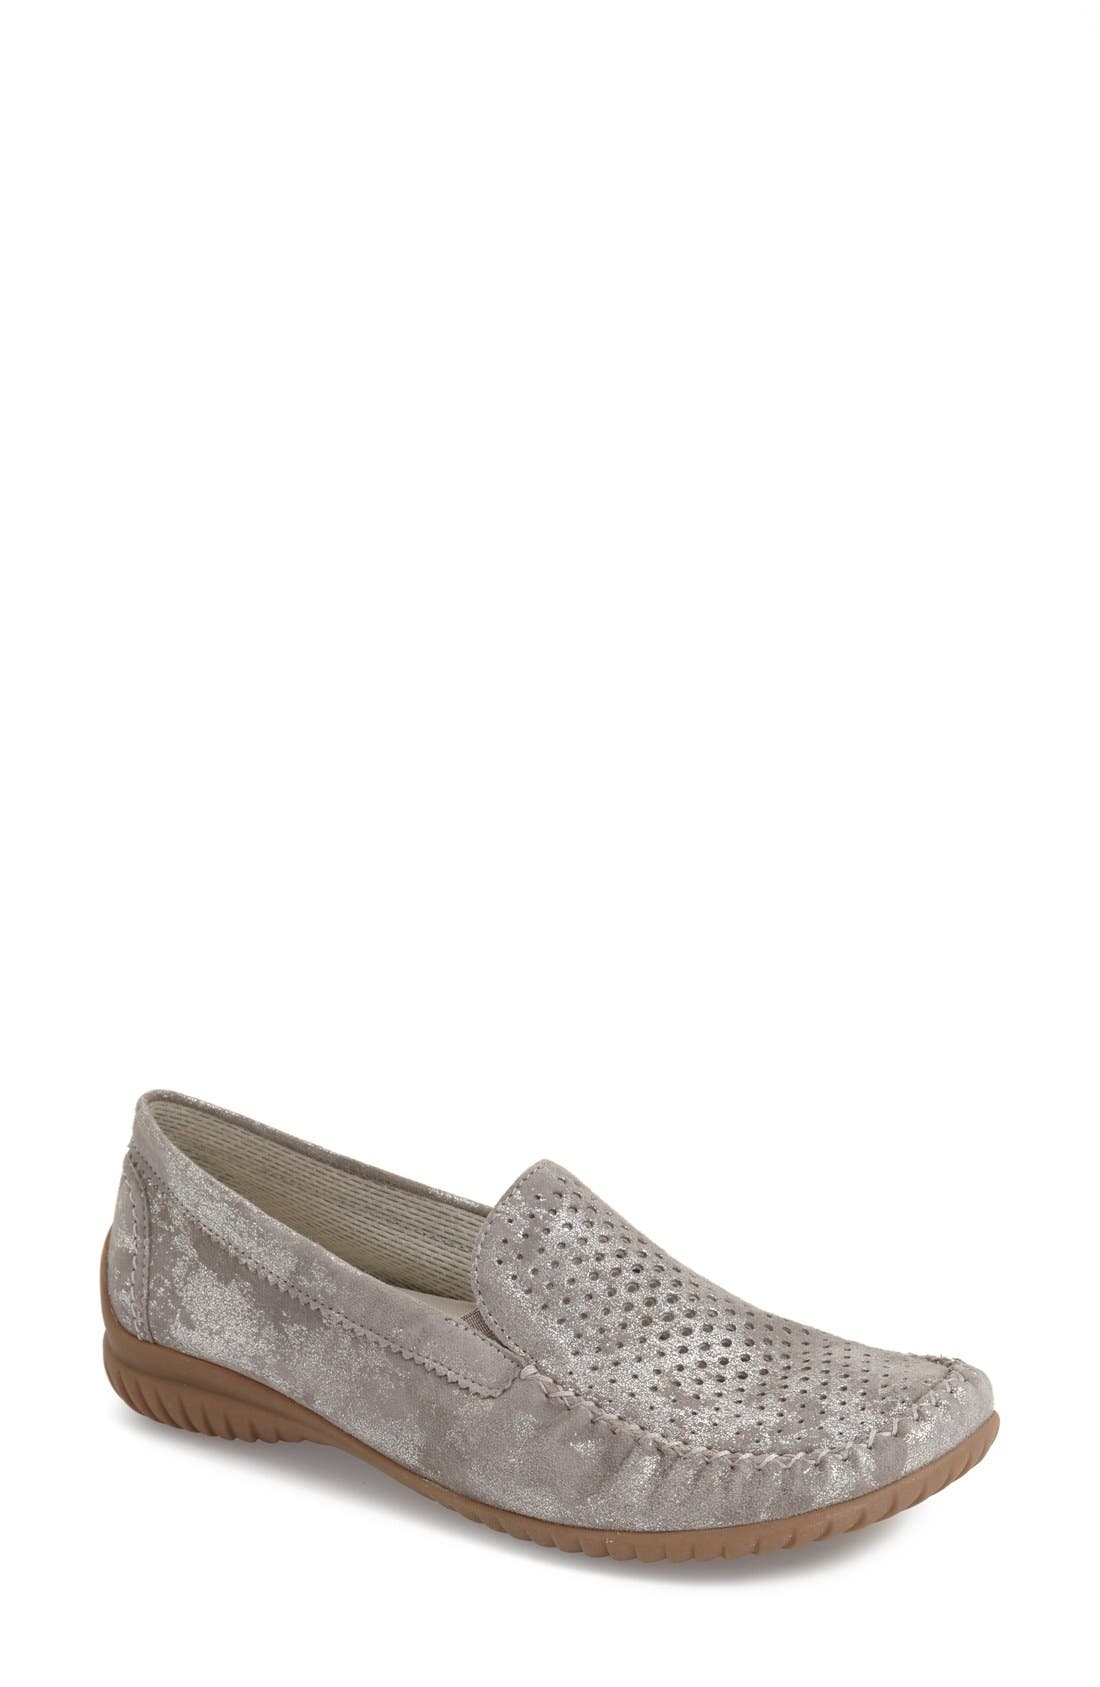 GABOR, Perforated Loafer, Main thumbnail 1, color, GREY CARUSO LEATHER